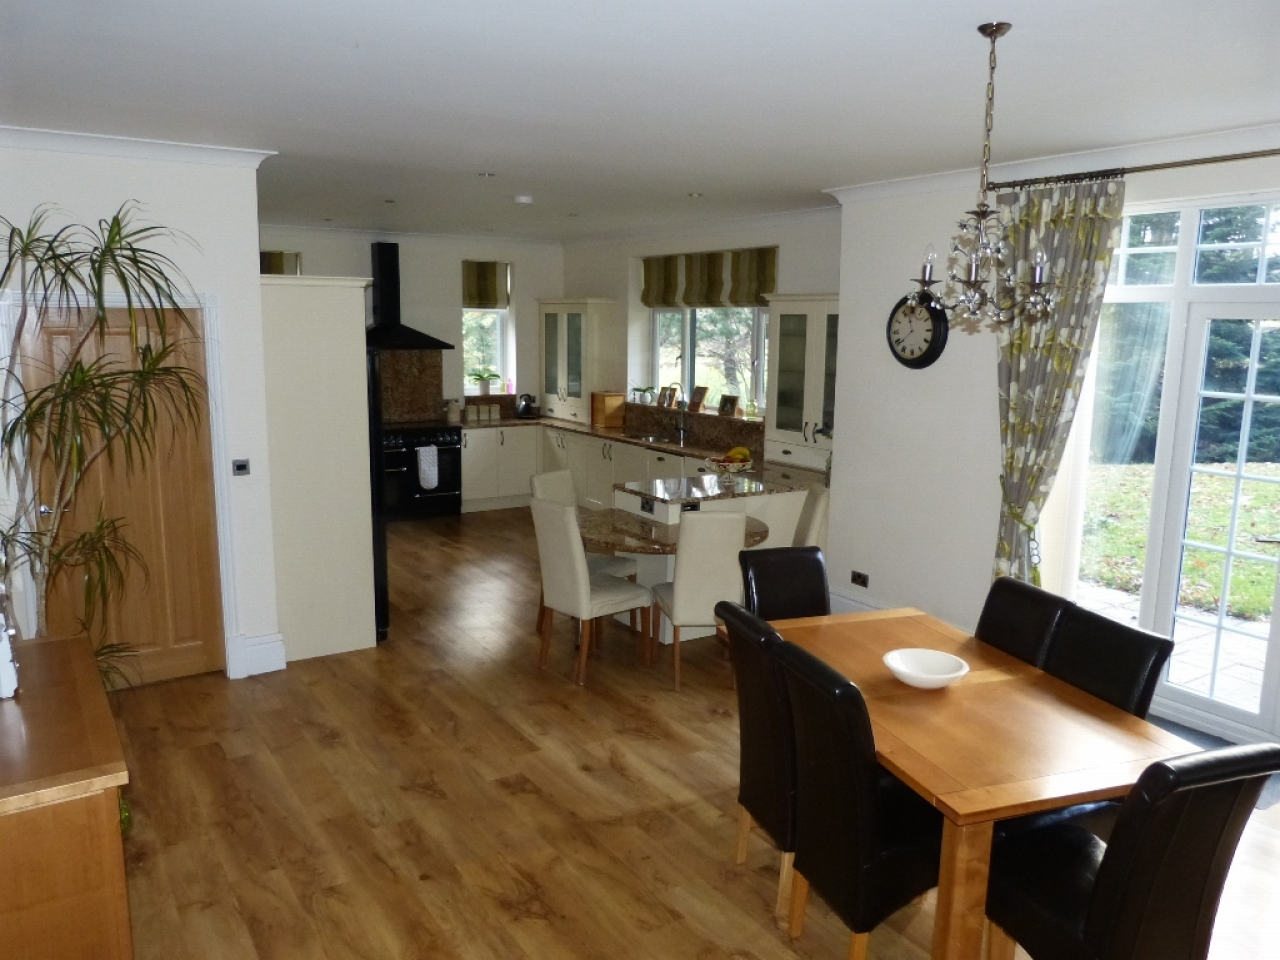 5 bedroom detached house SSTC in Abergele - Photograph 7